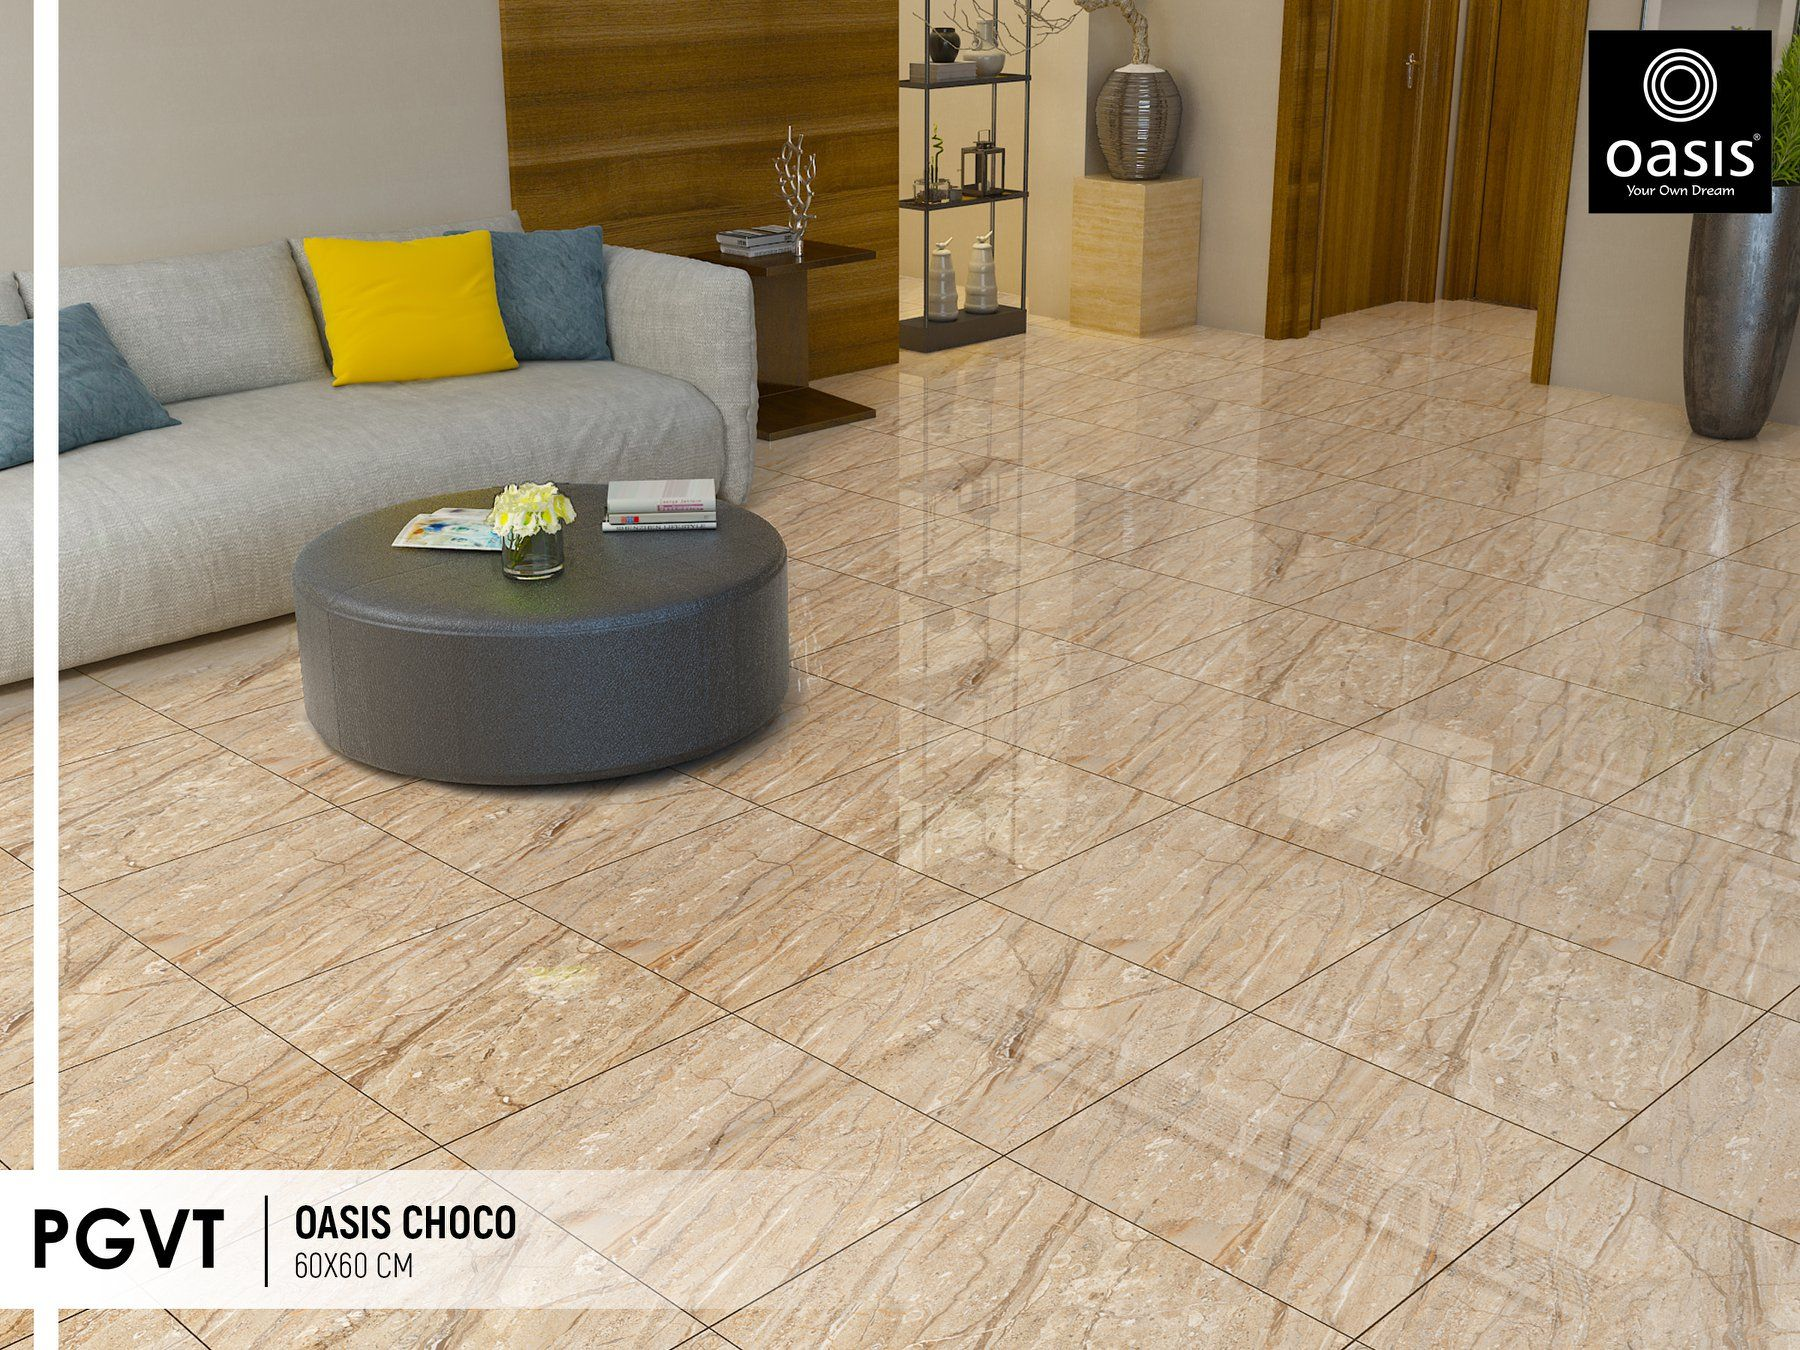 Tile Floor By Oasis Tiles India On Oasis Tiles Polished Glazed